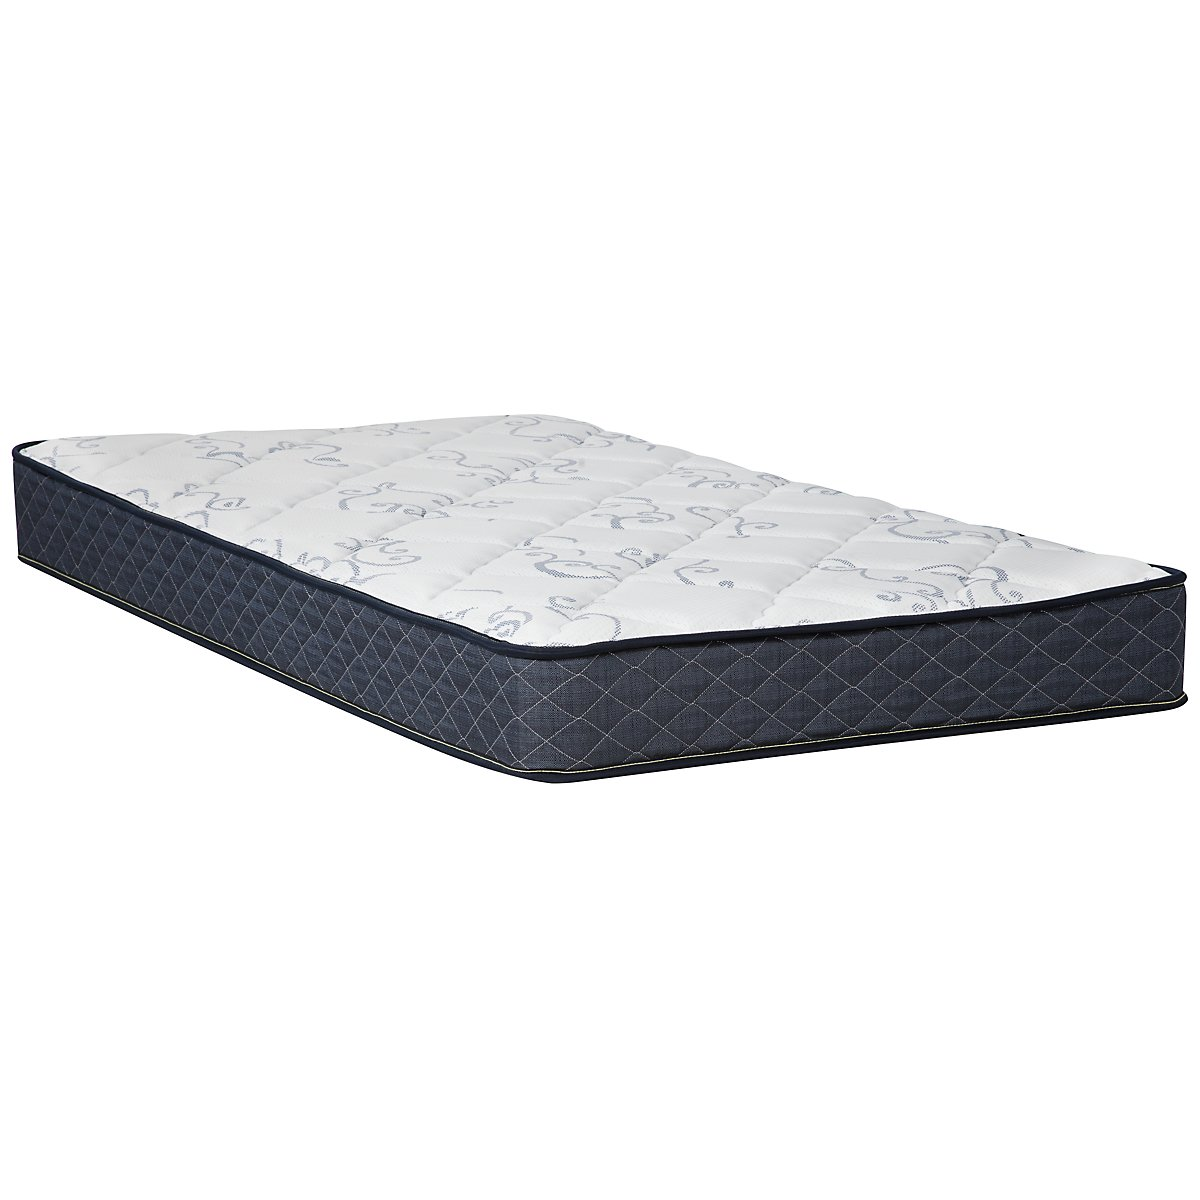 Kevin Charles Prescott Trundle Plush Innerspring Mattress